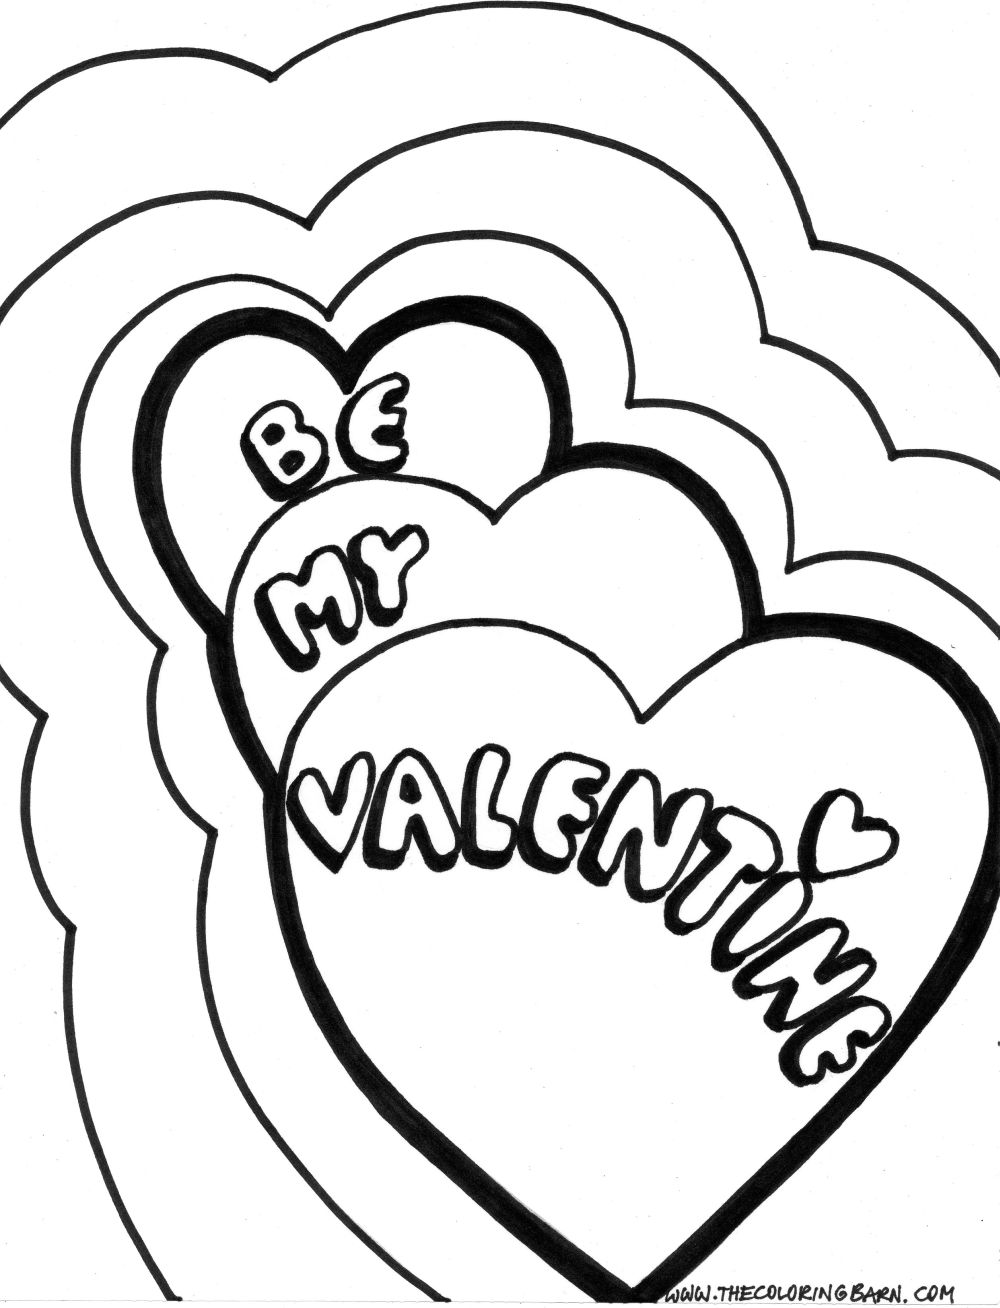 Free valentines day coloring pages to print - Free Printable Valentine Coloring Disney Valentines Day Coloring Pages